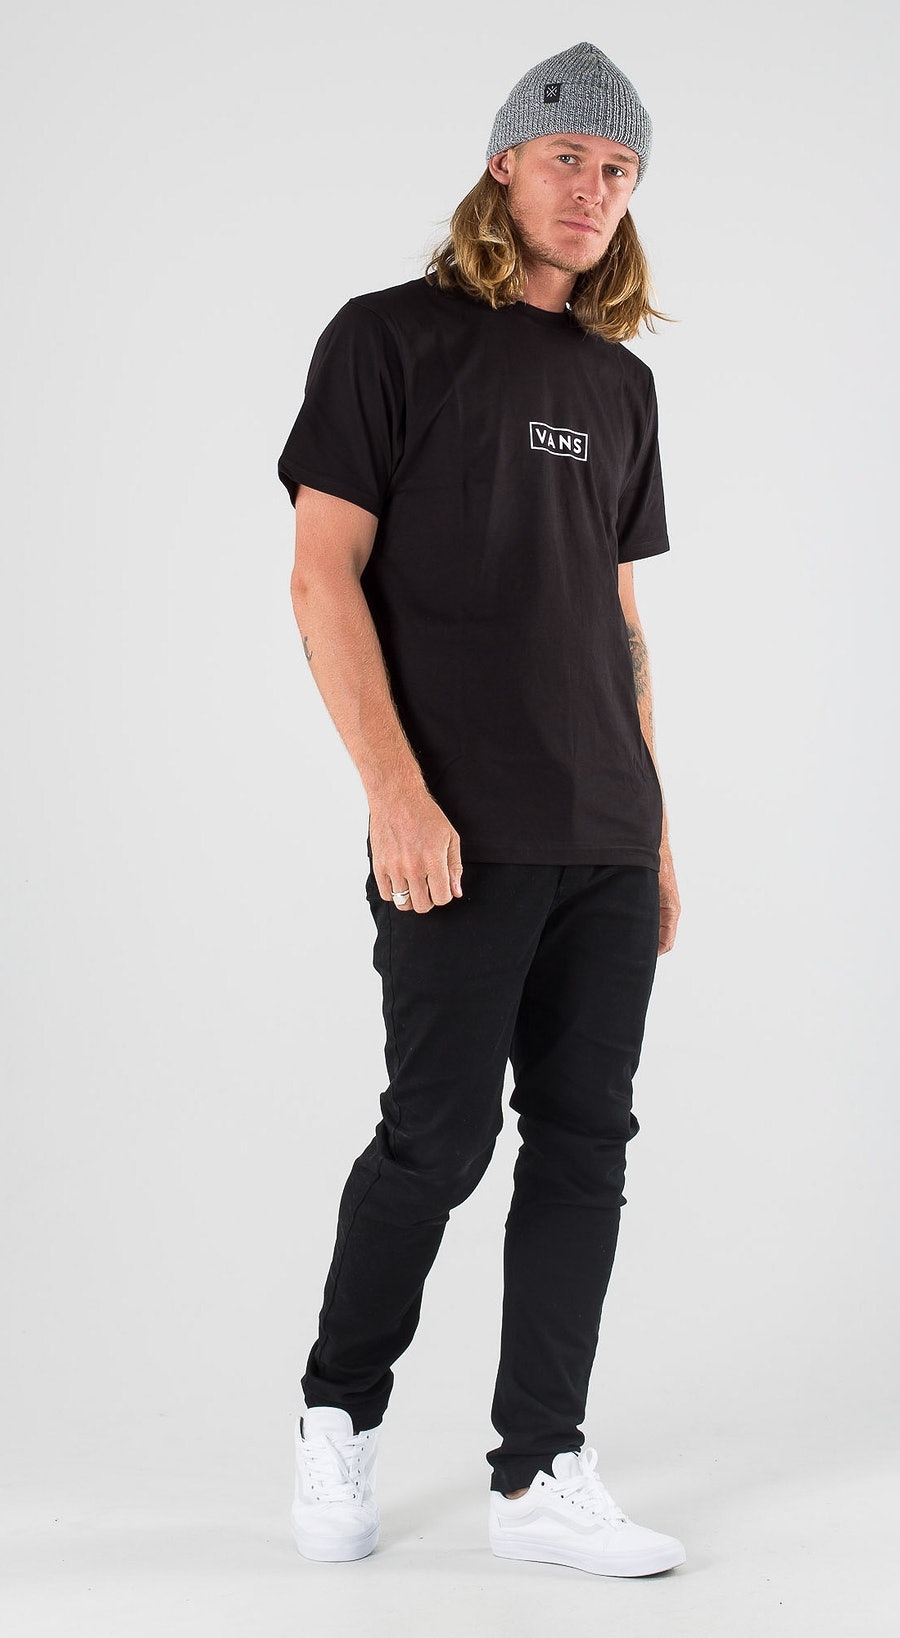 Vans Easy Box Black/White Outfit Multi